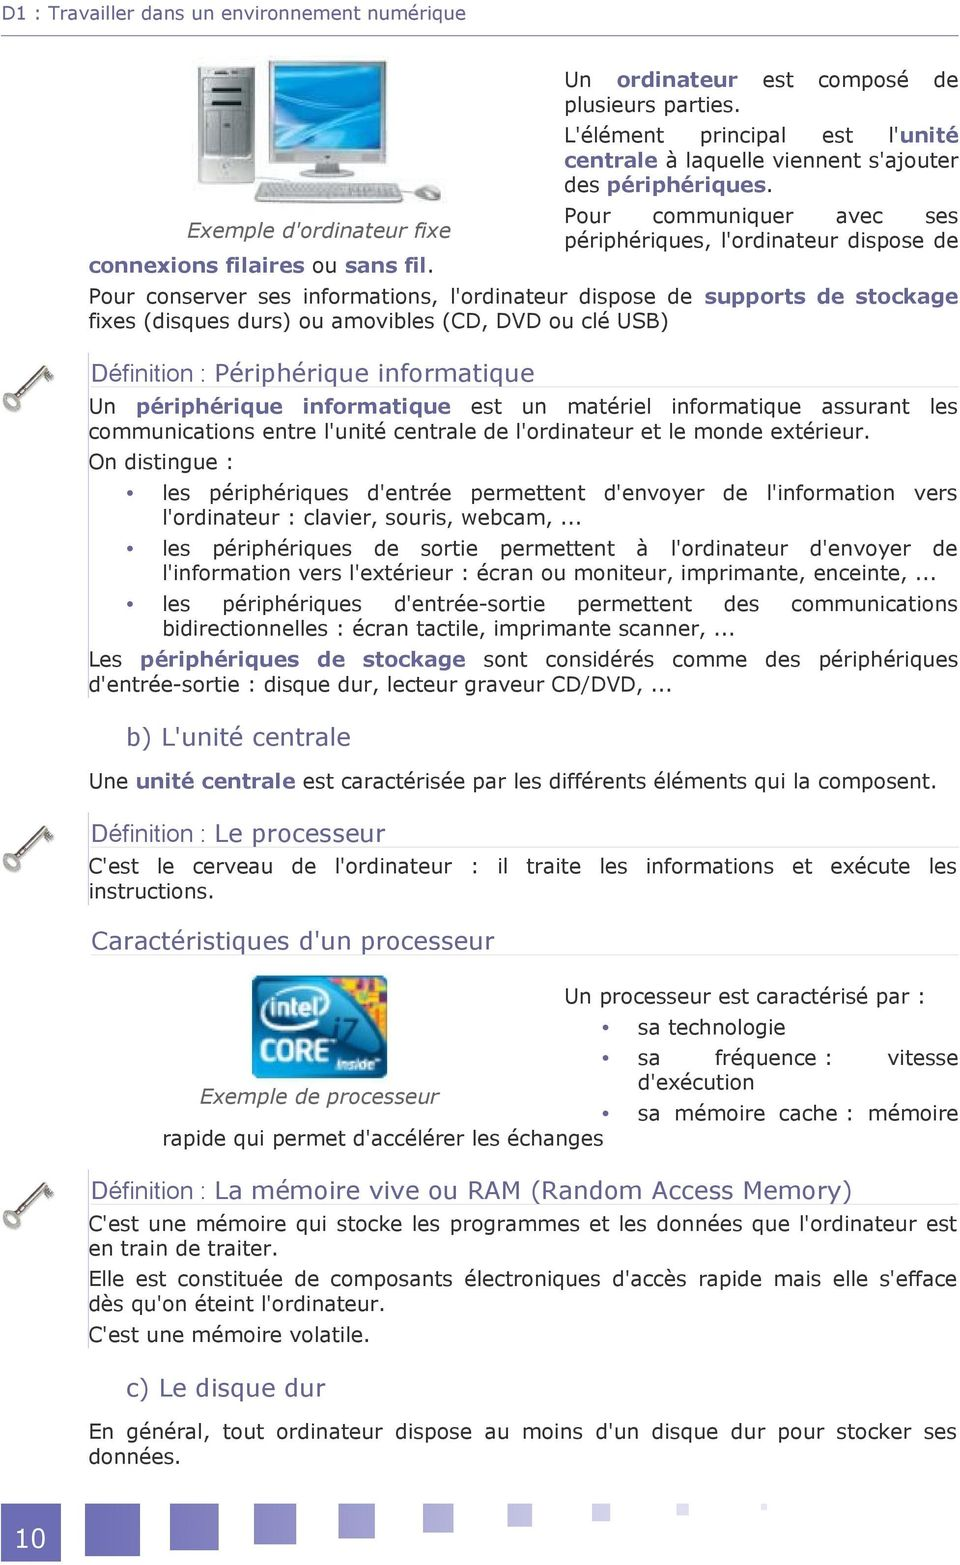 Pour conserver ses informations, l'ordinateur dispose de supports de stockage fixes (disques durs) ou amovibles (CD, DVD ou clé USB) Définition : Périphérique informatique Un périphérique